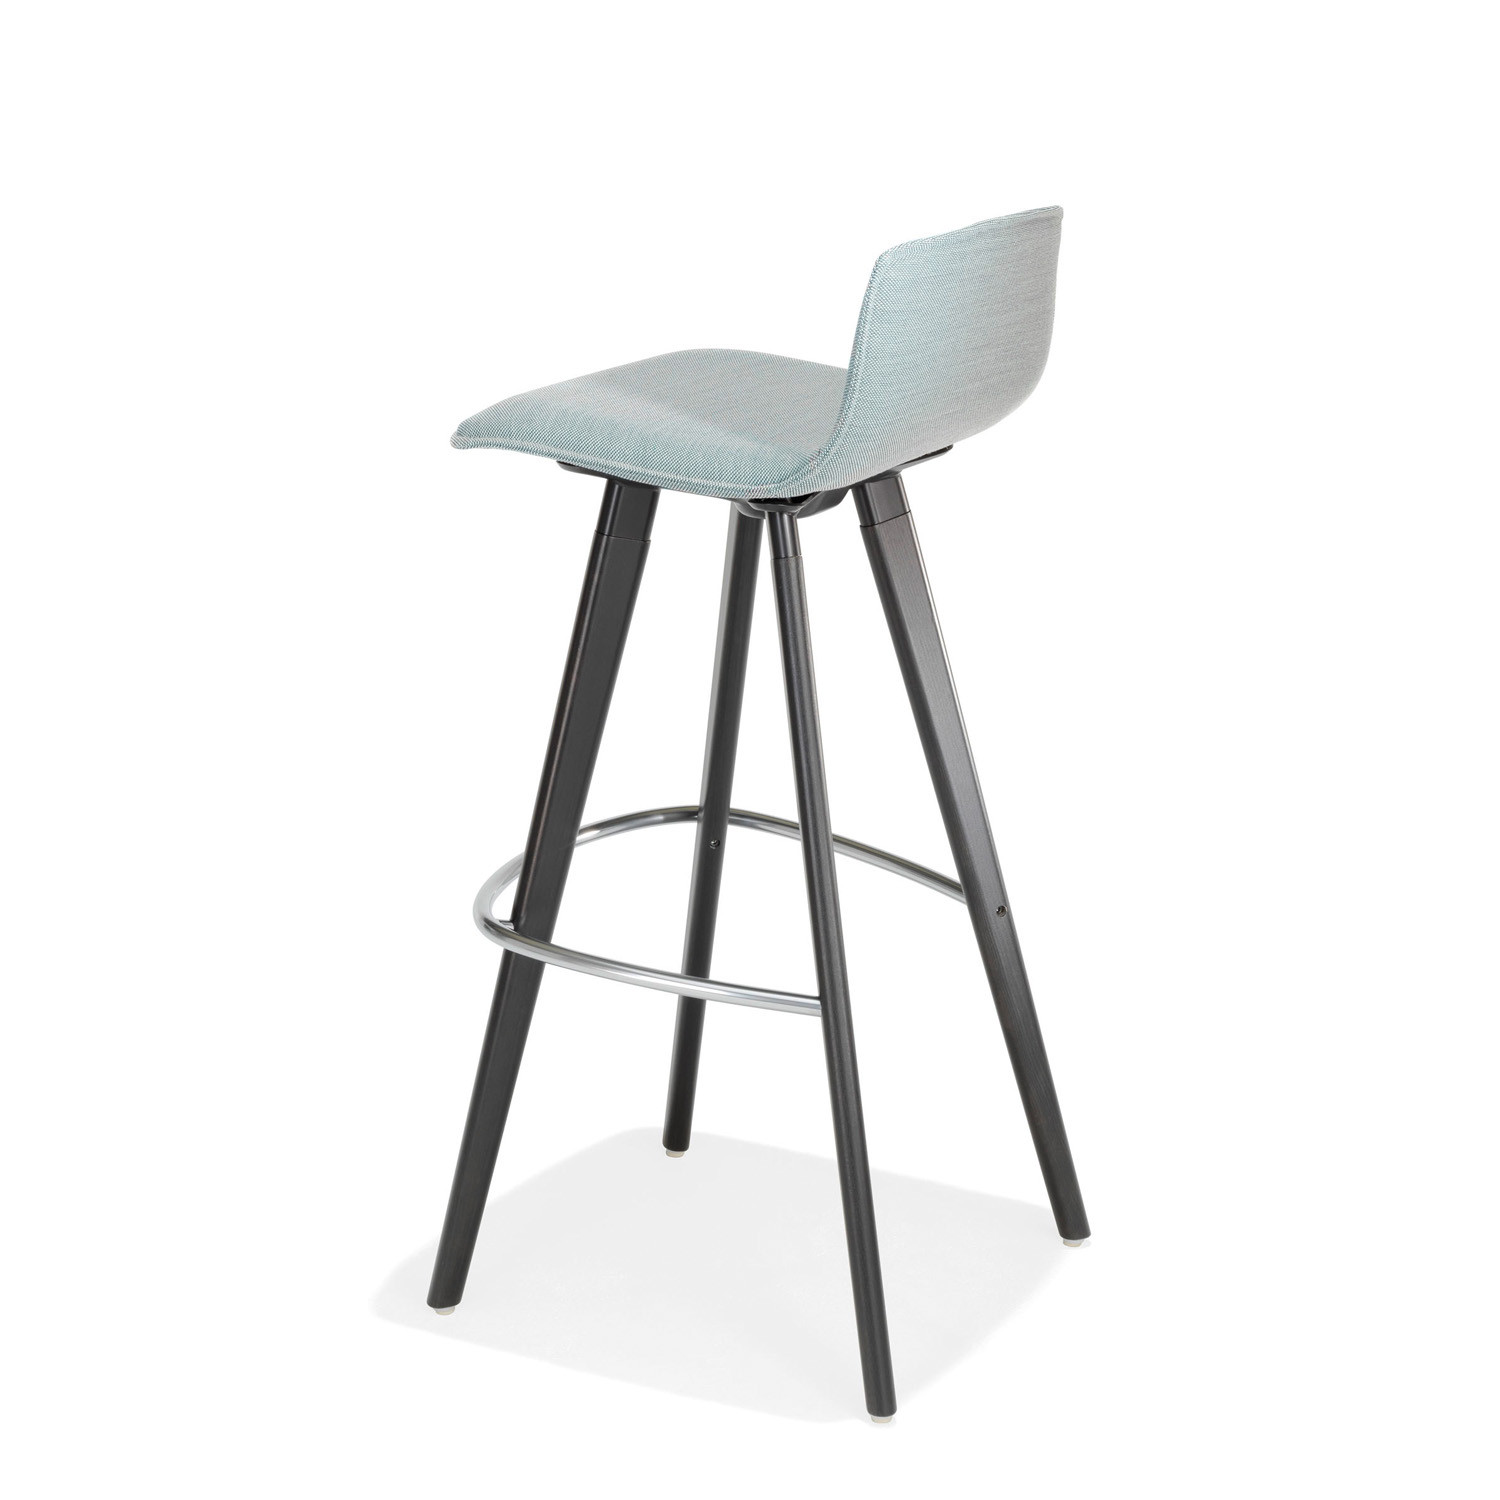 2180 Uni_Verso Barstool with low backrest